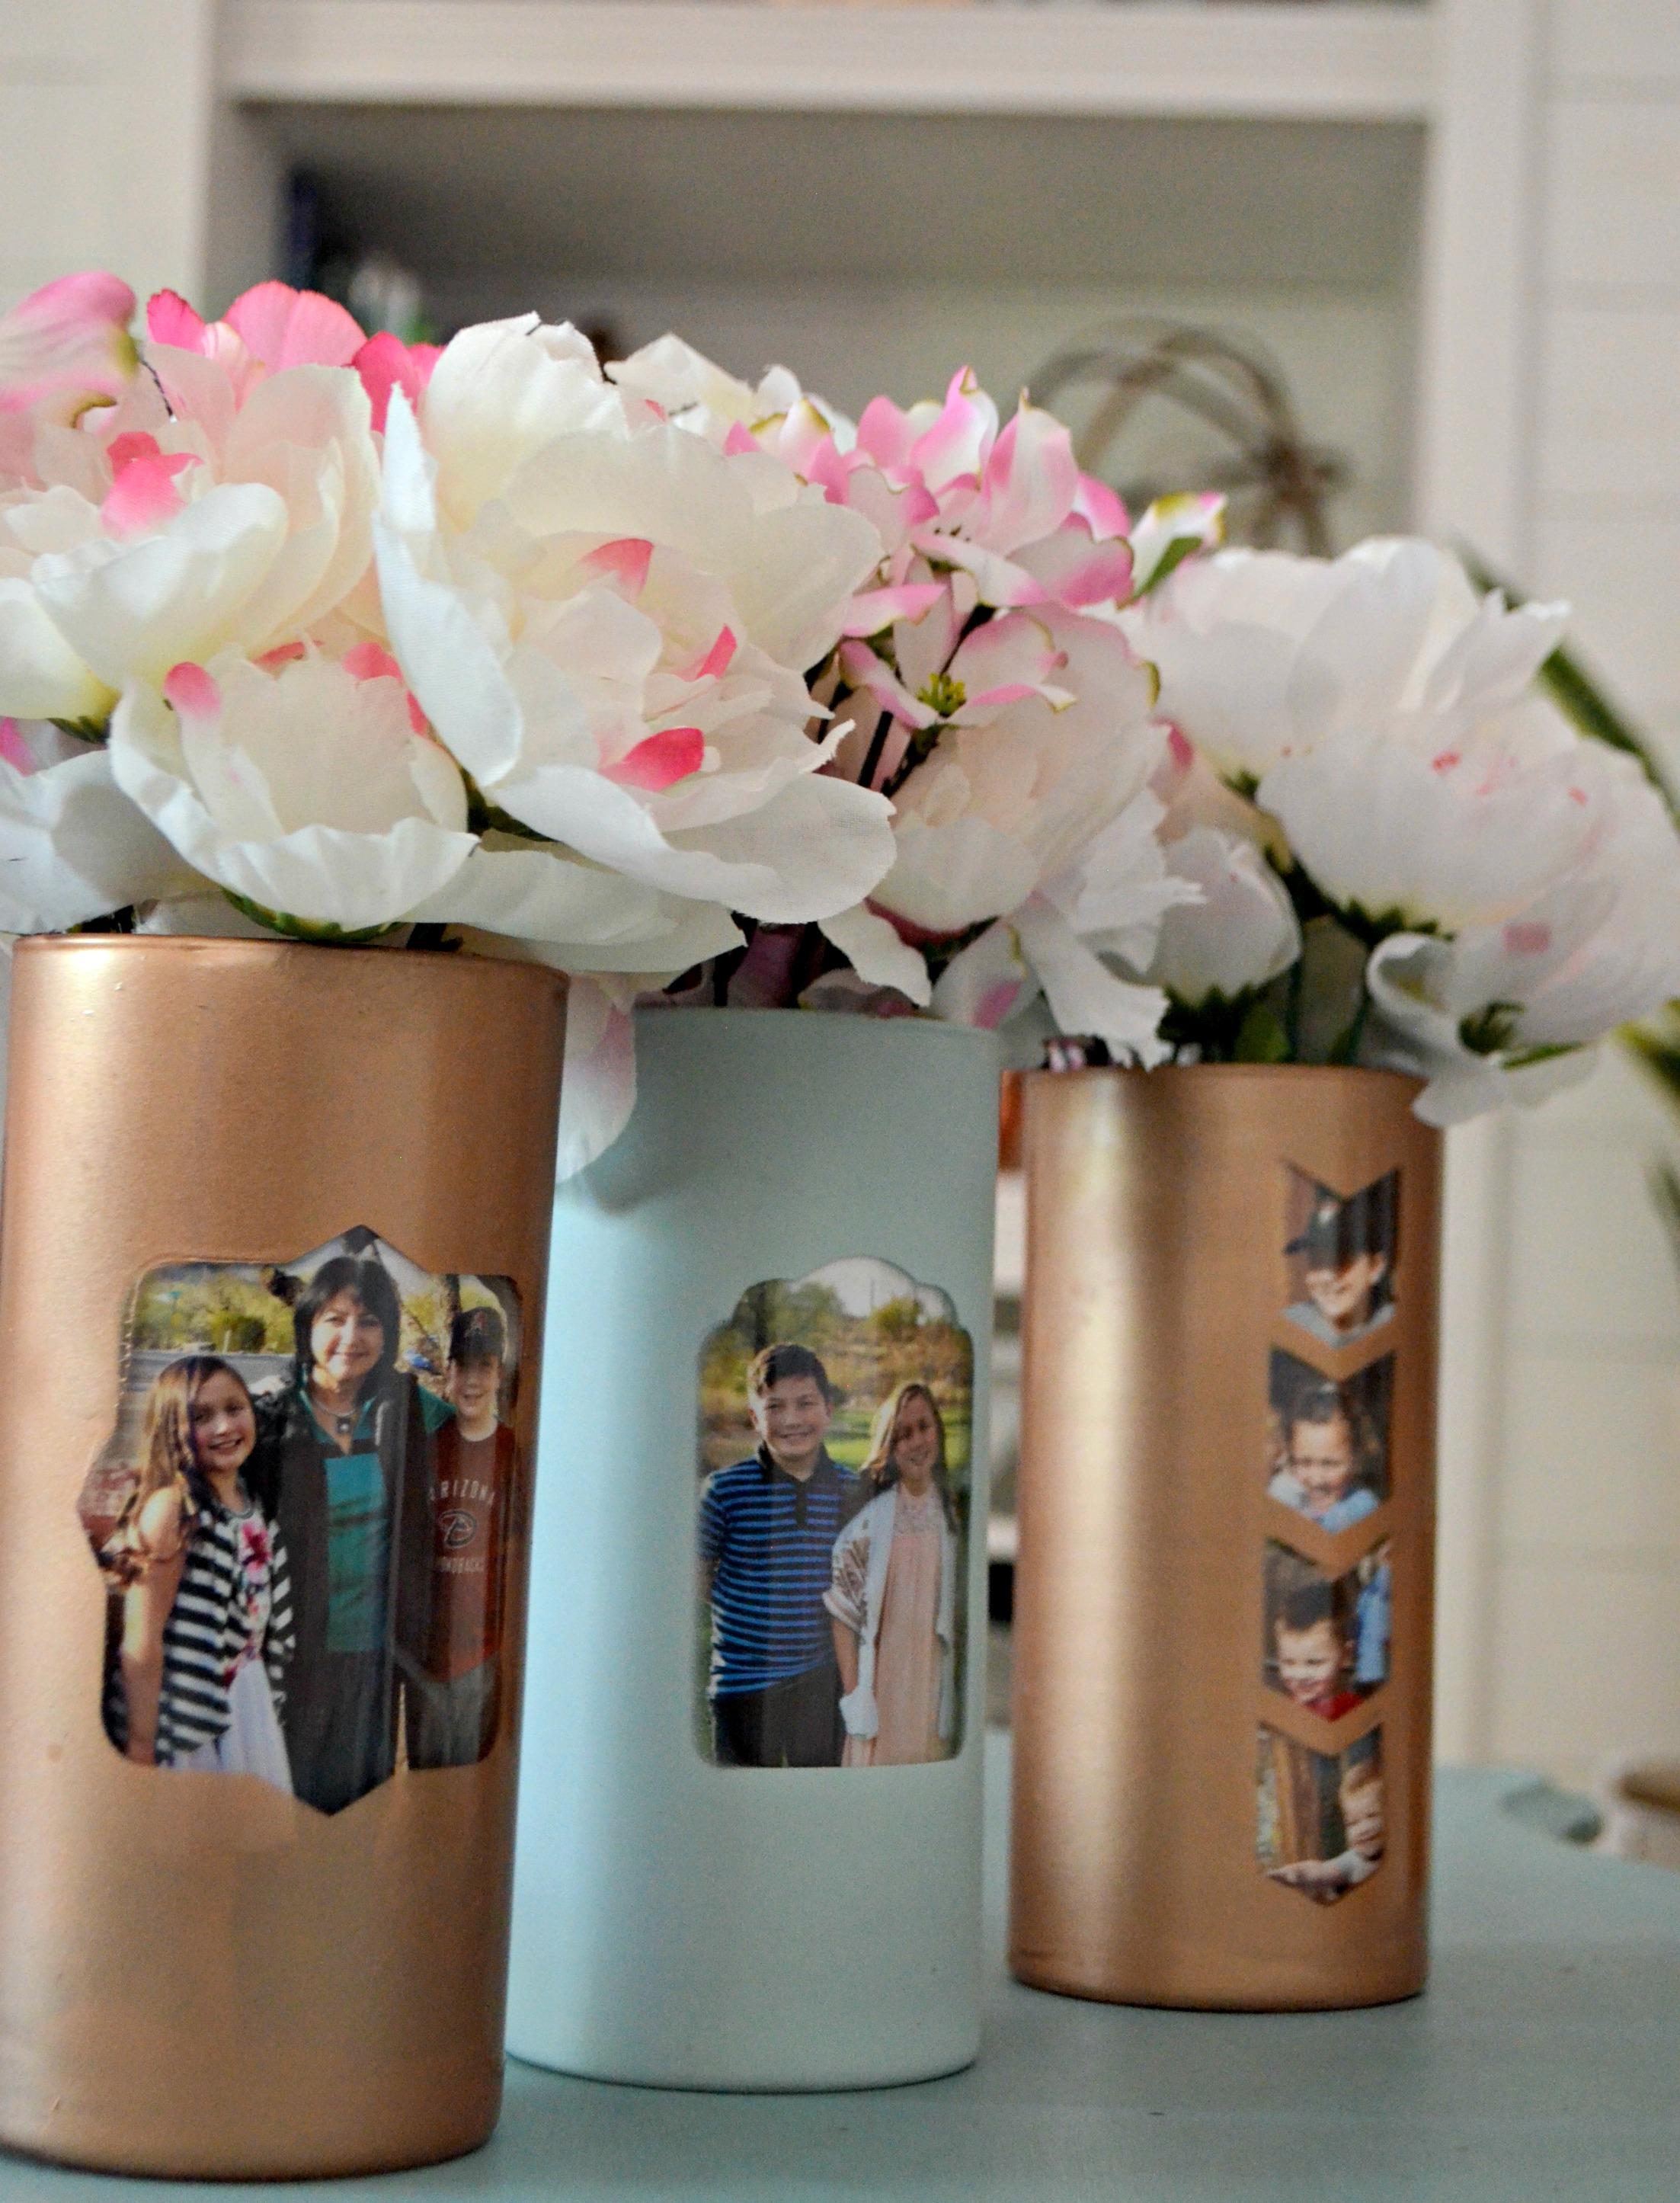 These beautiful vases display families and gorgeous, seasonal flowers.